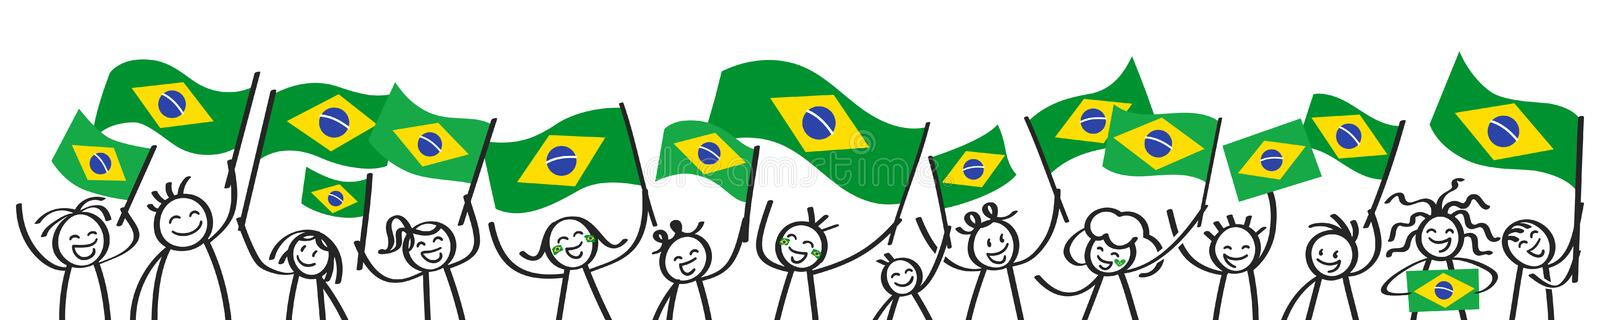 Cheering crowd of happy stick figures with Brazilian national flags, smiling Brazil supporters, sports fans stock illustration